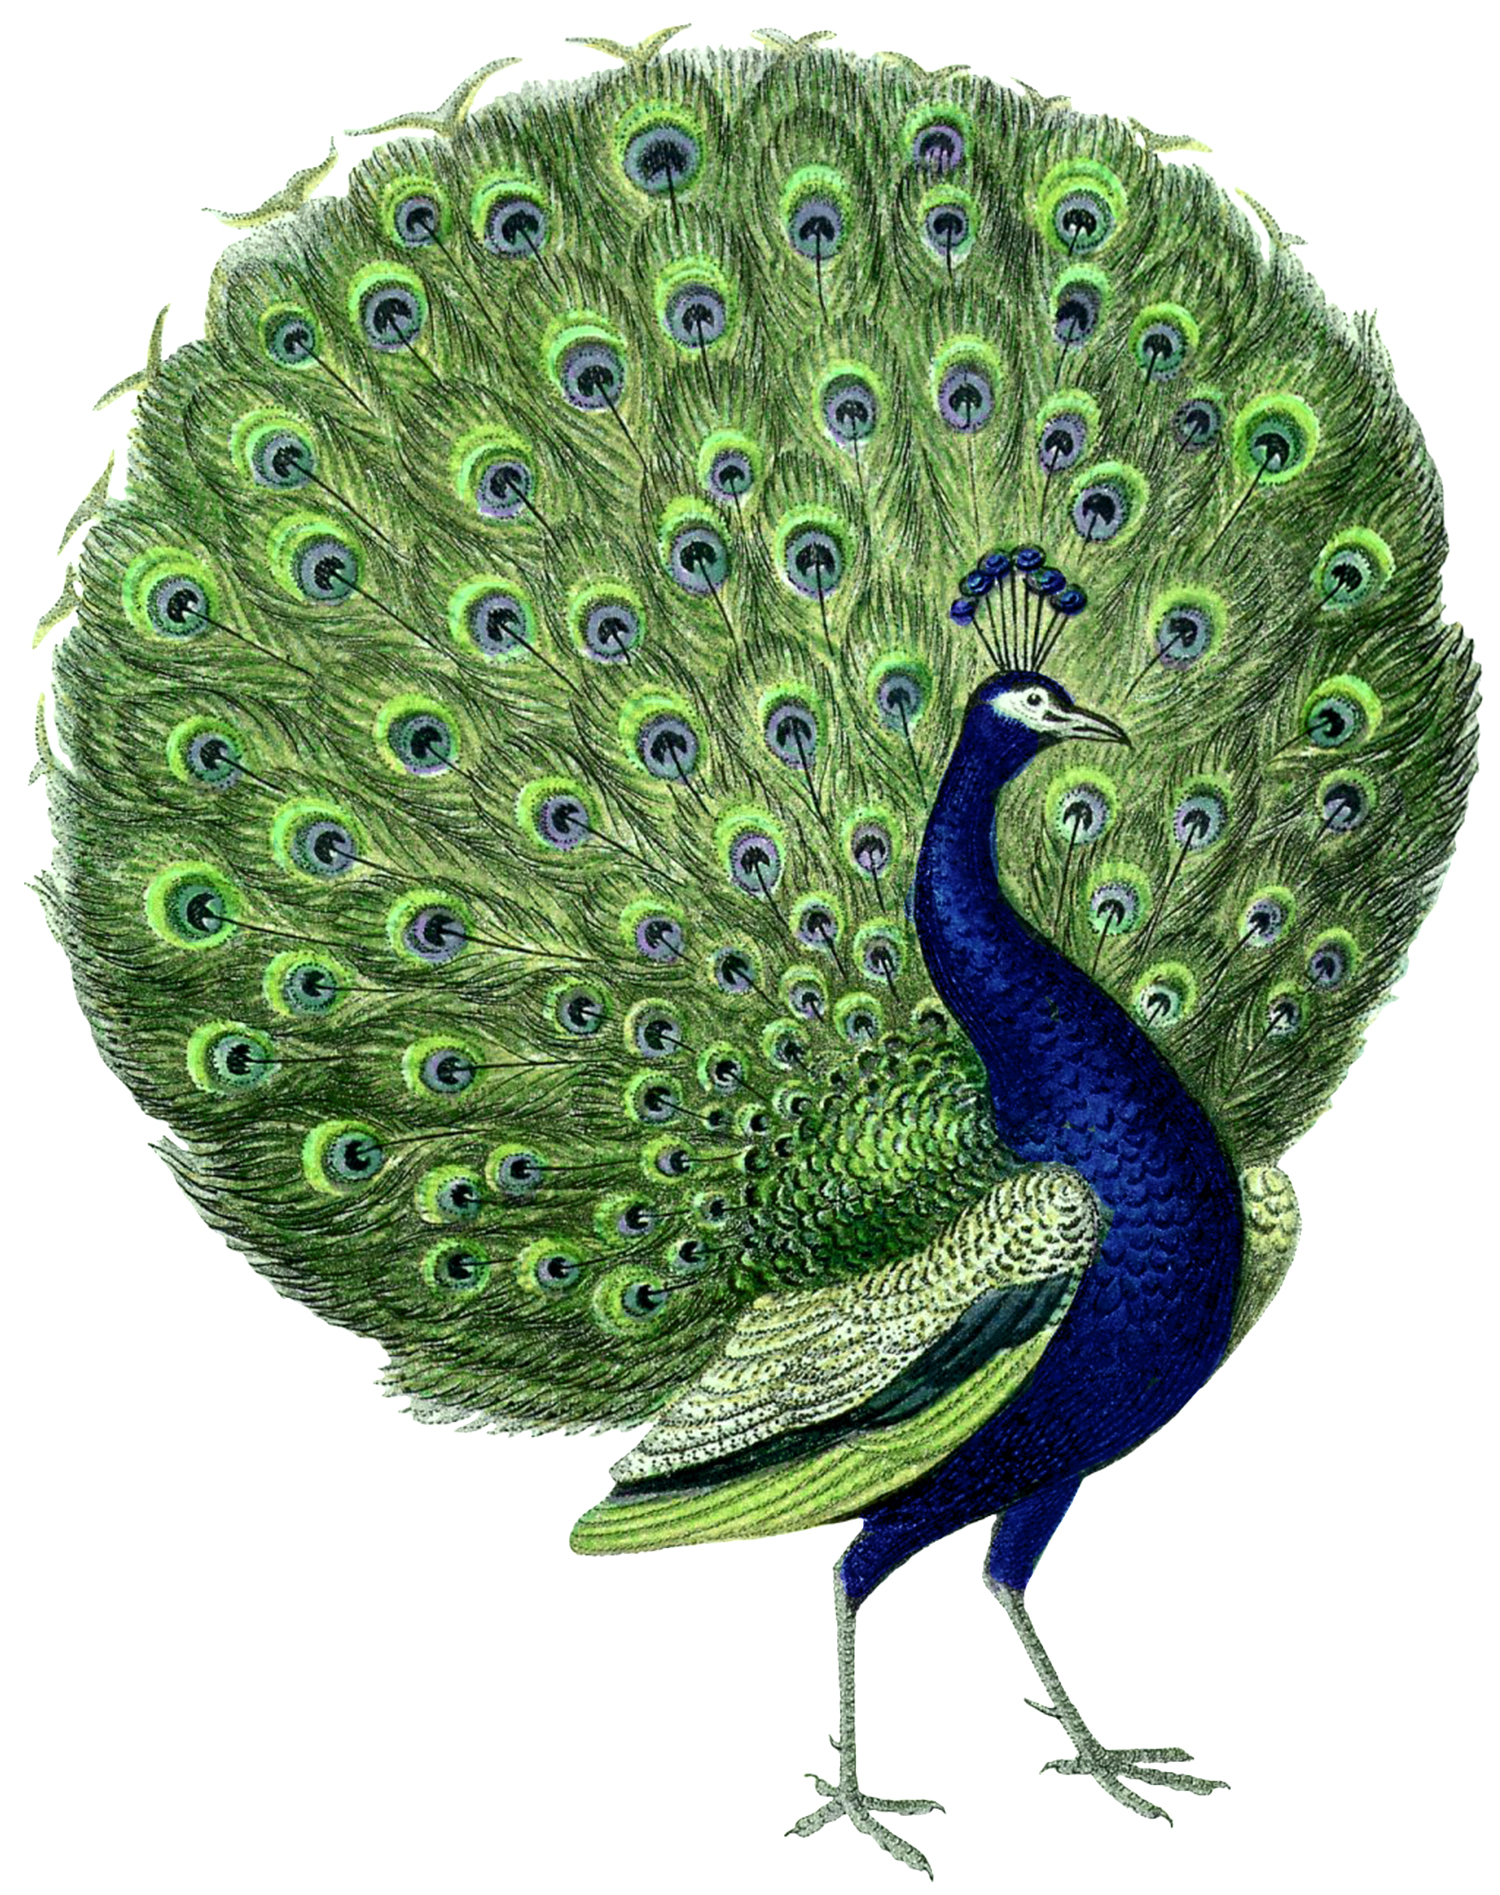 Male Peacock with Unfolded Tail